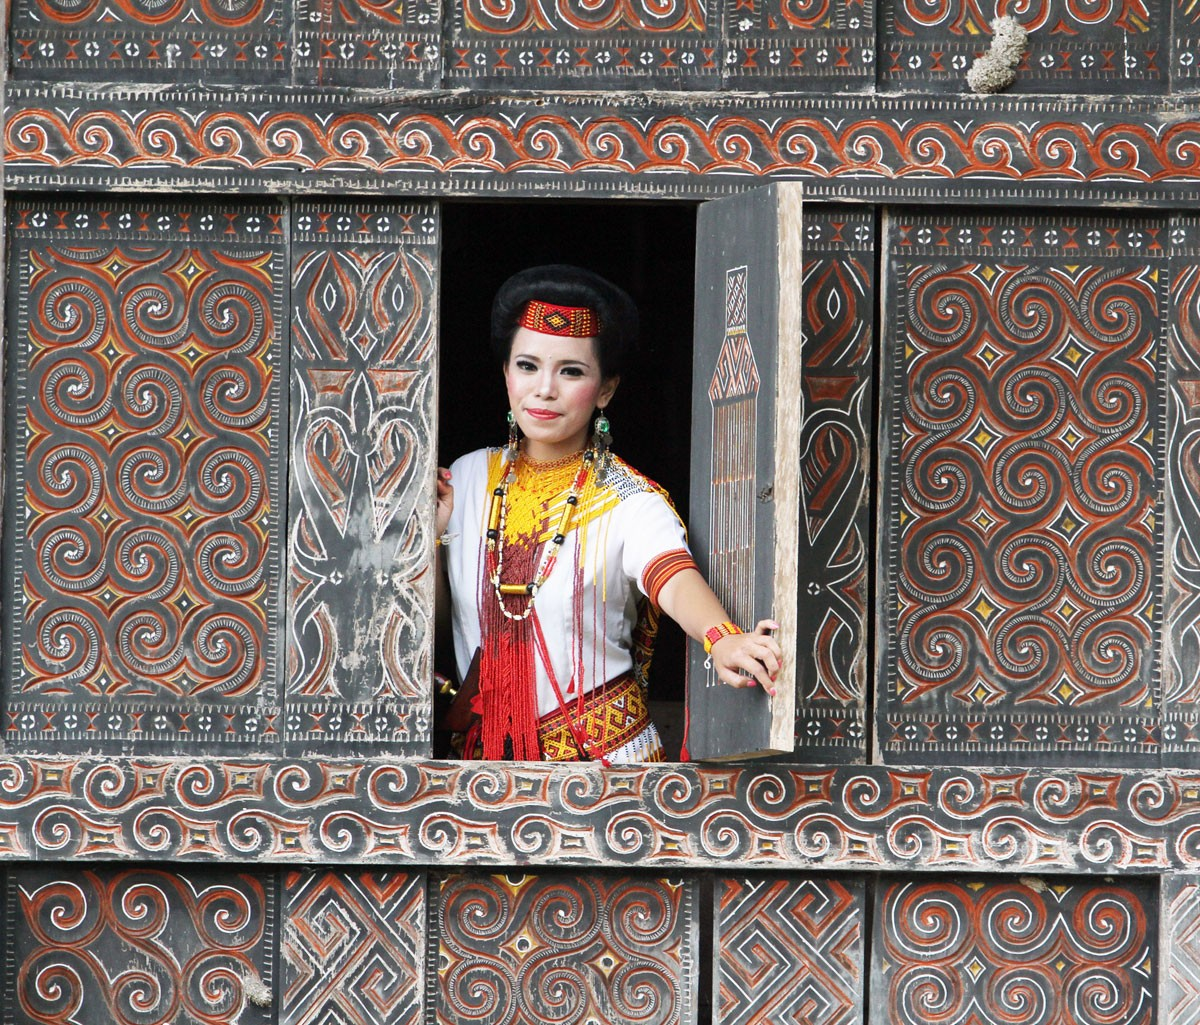 Opening up: A Torajan woman poses from inside a Tongkonan traditional house in Suloara' village. JP/ PJ Leo